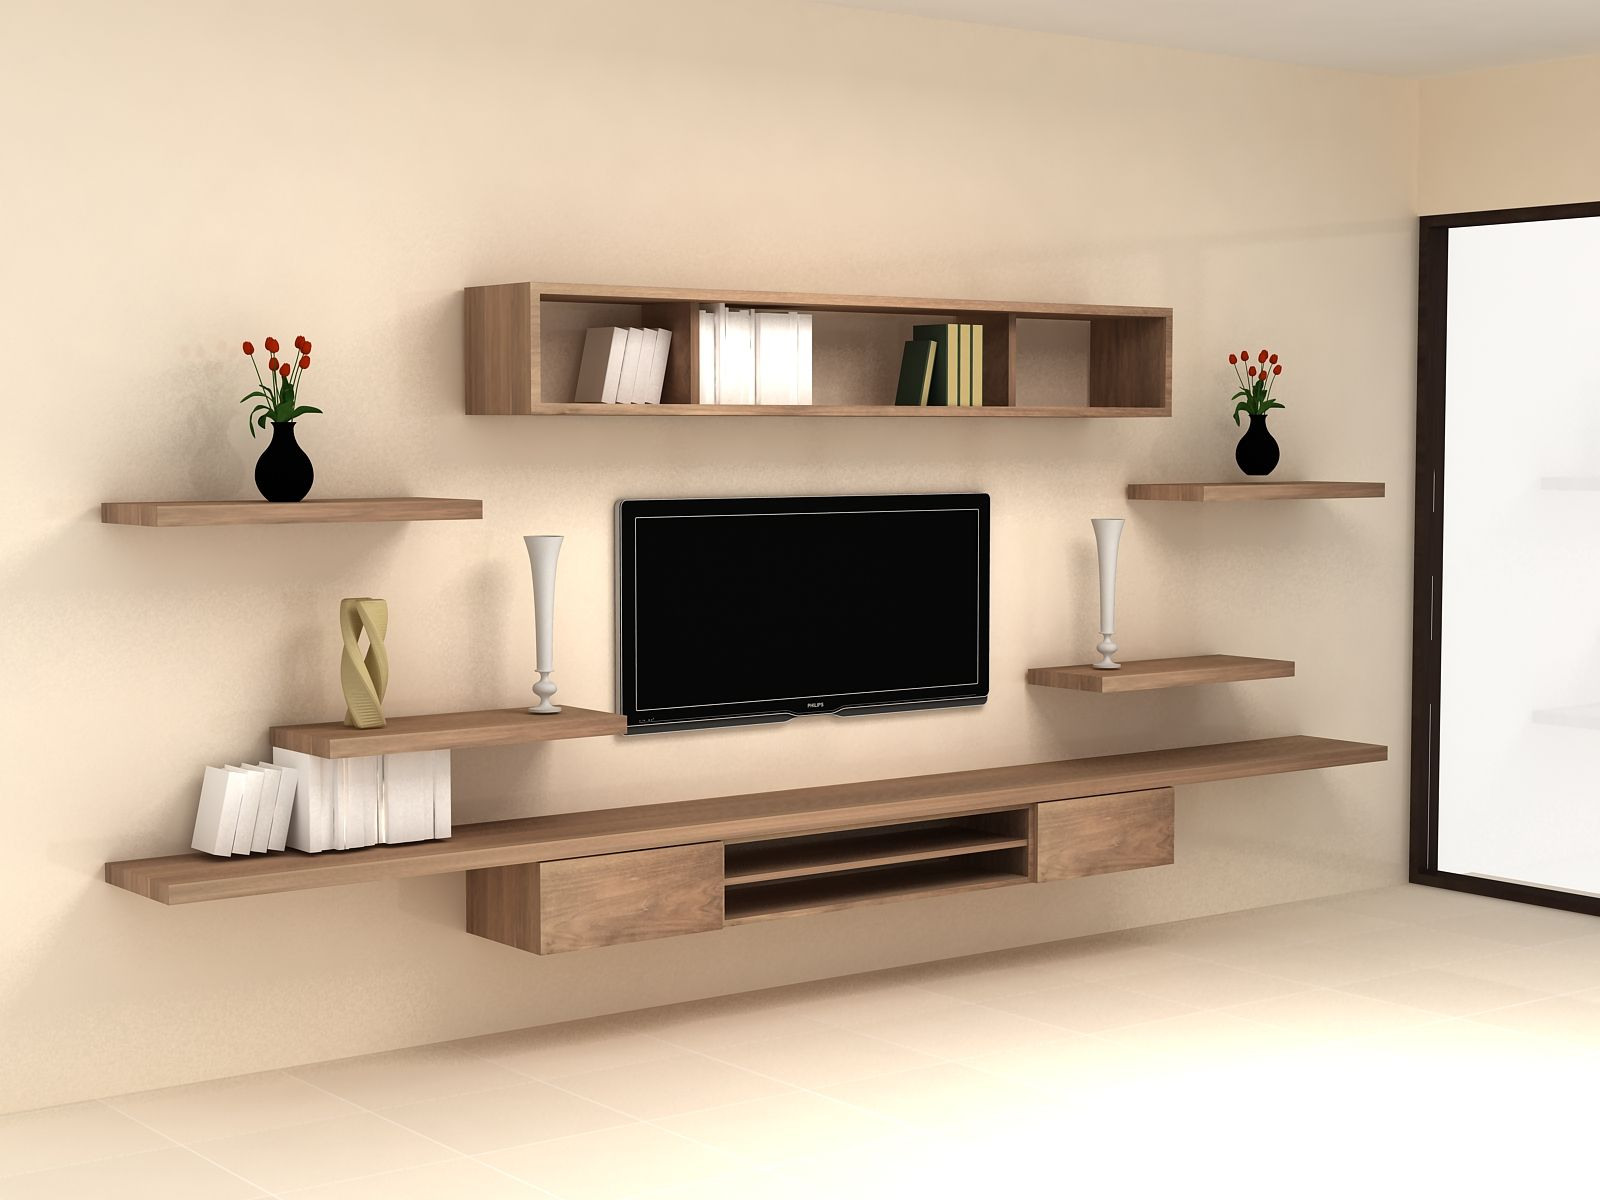 Tv Cabinet Ideas Wall Hung Tv Cabinet 1 …  Pinteres…